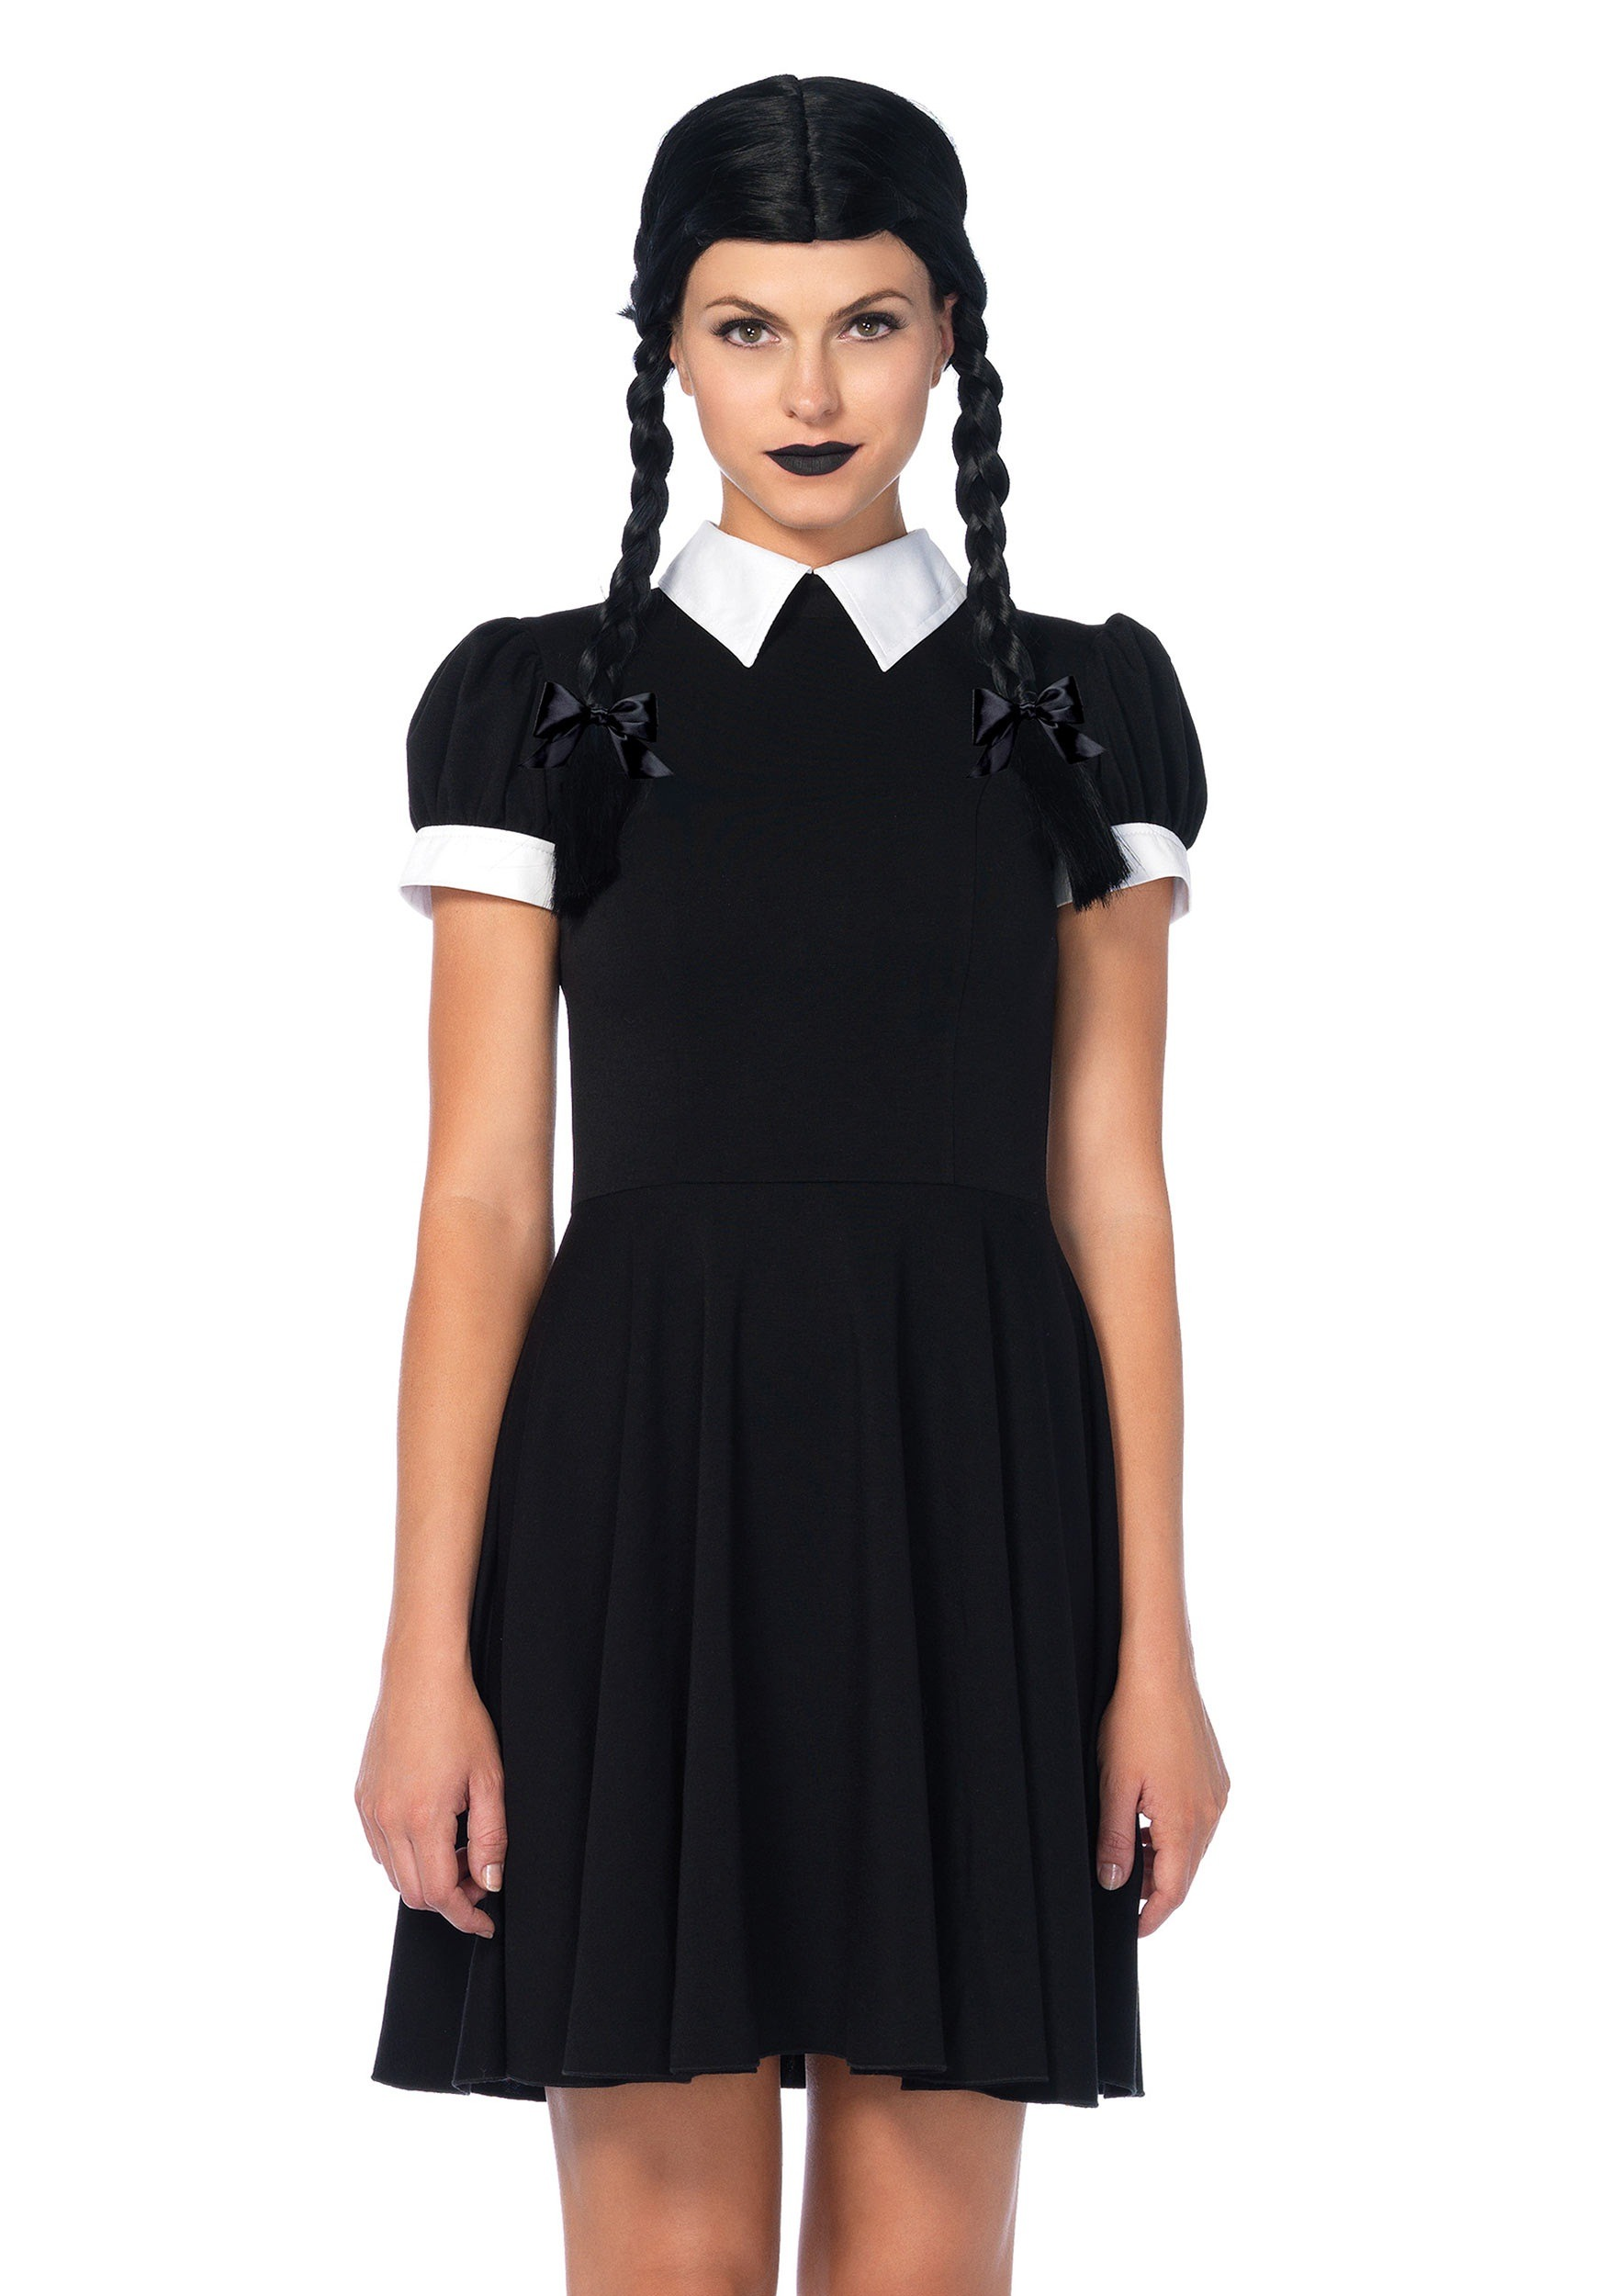 Women's Gothic Darling Costume